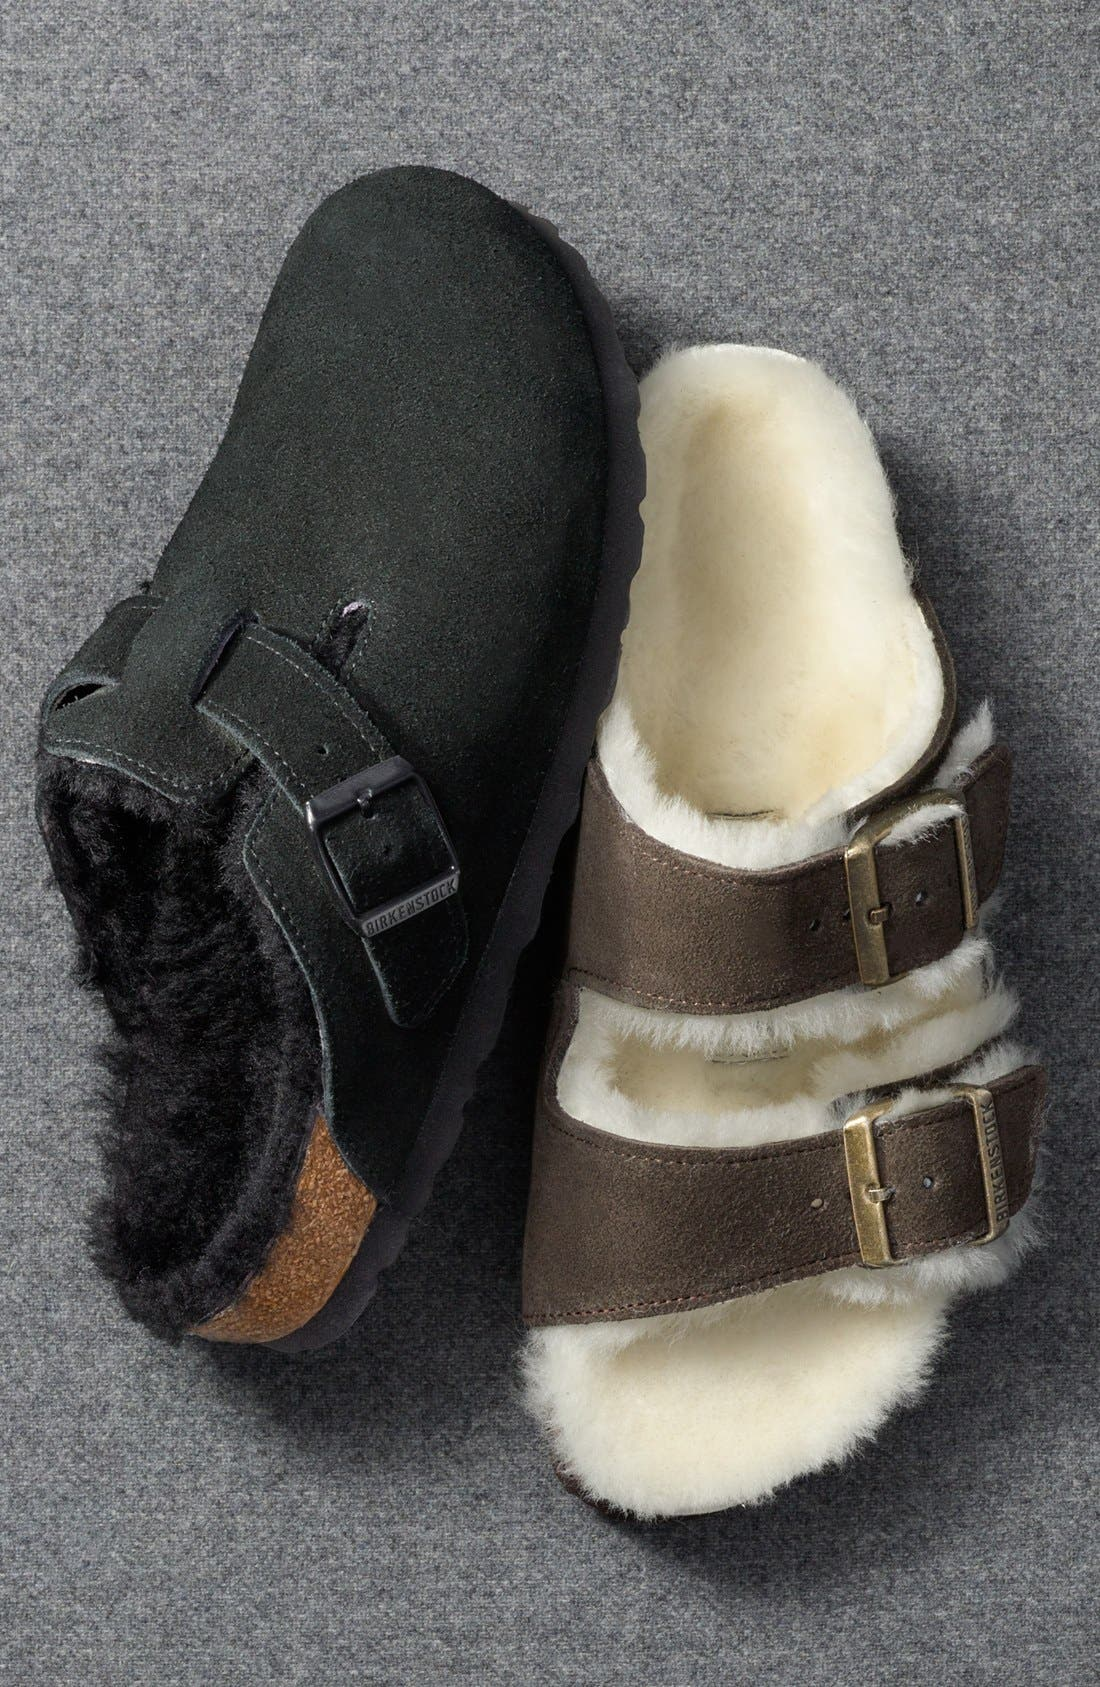 'Boston' Genuine Shearling Lined Clog,                             Alternate thumbnail 7, color,                             FOREST/ NATURAL SUEDE